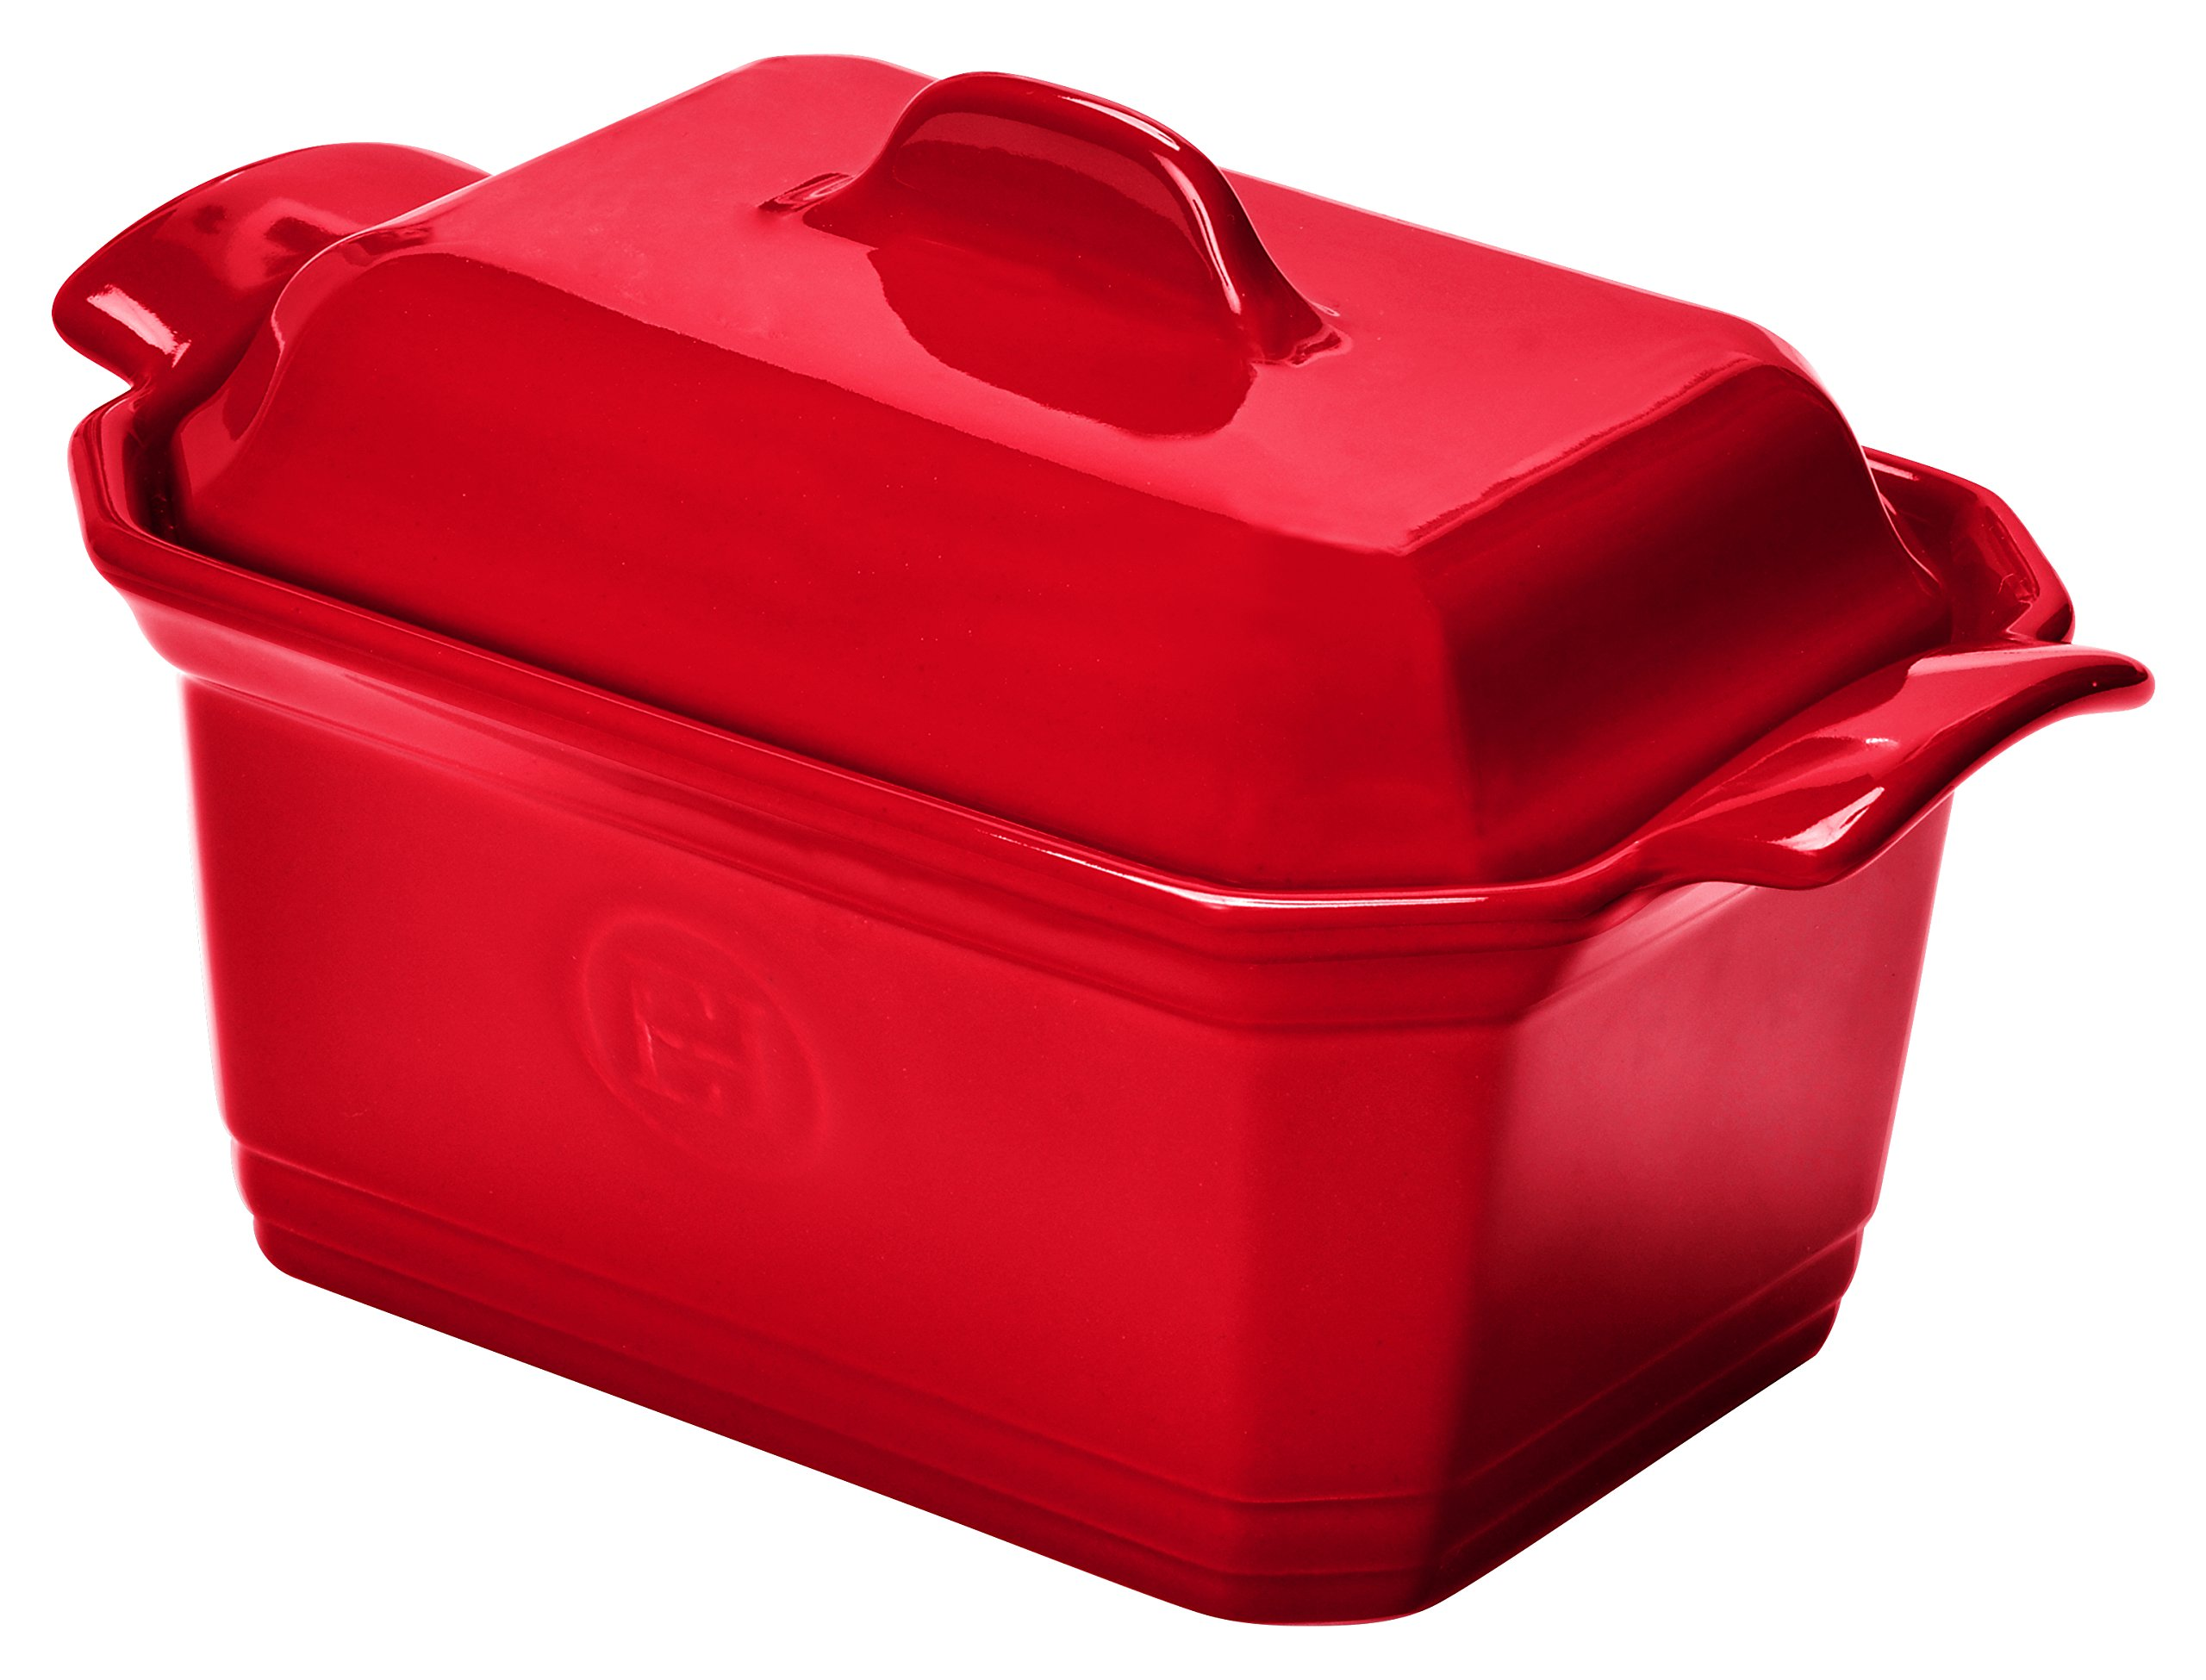 Emile Henry 349706 France Ovenware Terrine & Press, Small, Burgundy by Emile Henry